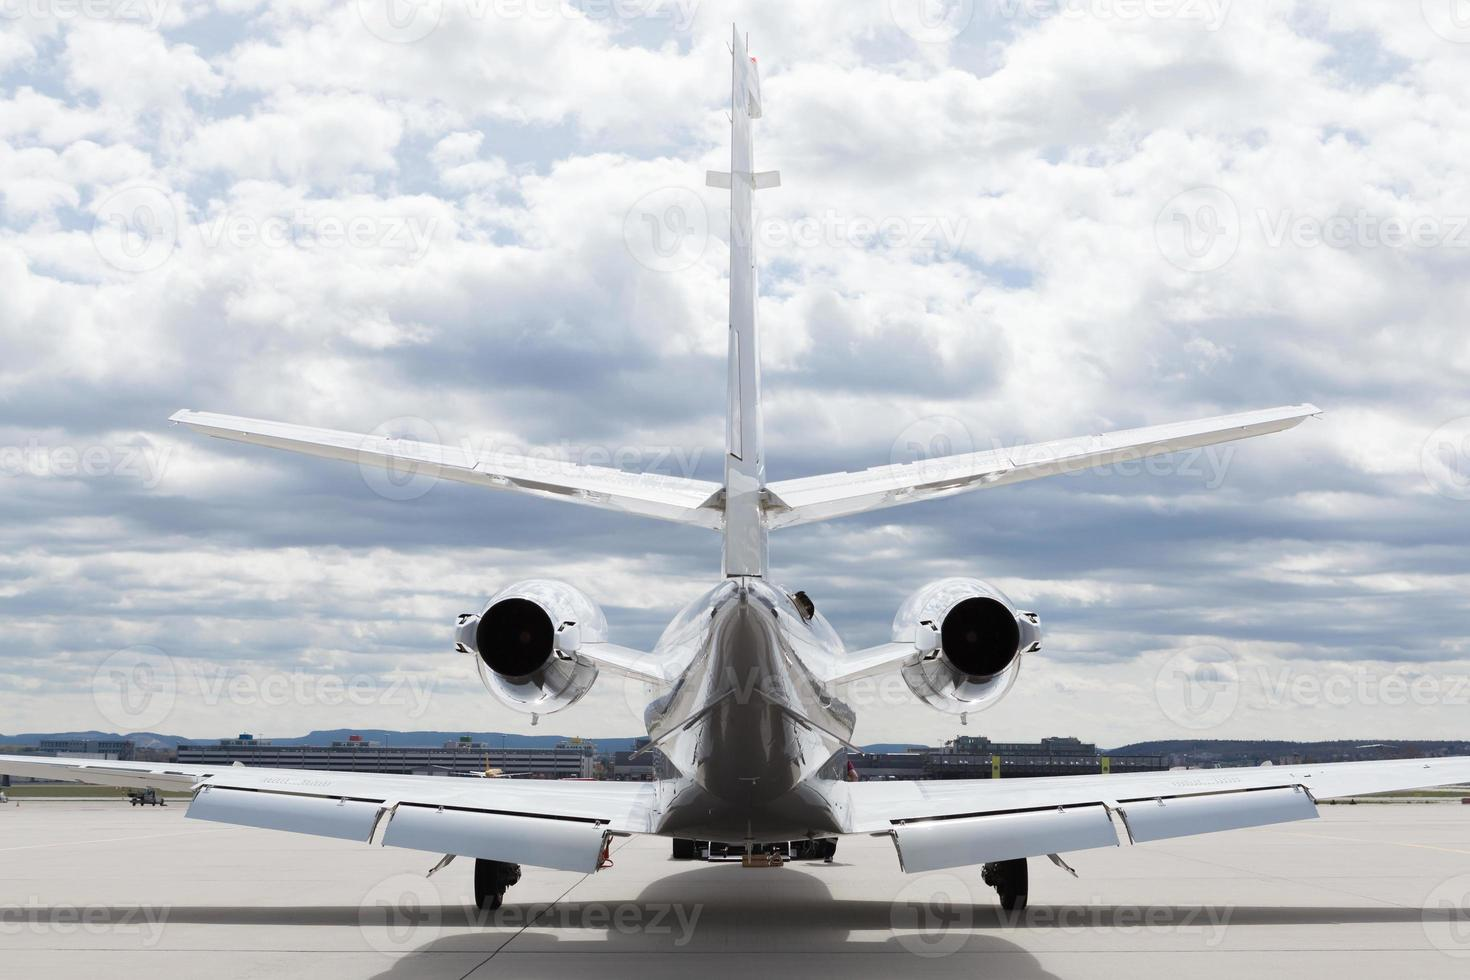 Aircraft learjet Plane in front of Airport with cloudy sky photo